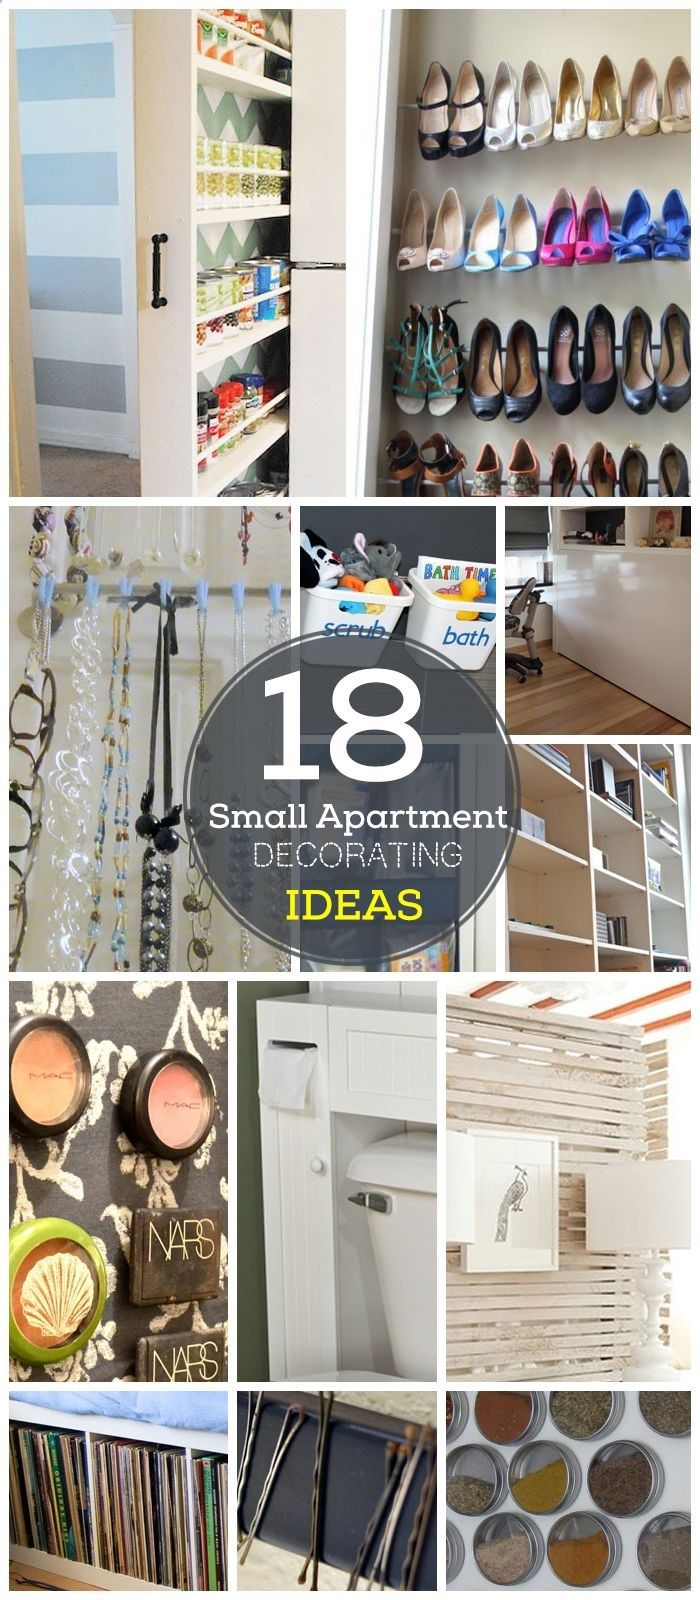 24 best images about new home ideas on pinterest modern for New apartment decorating ideas